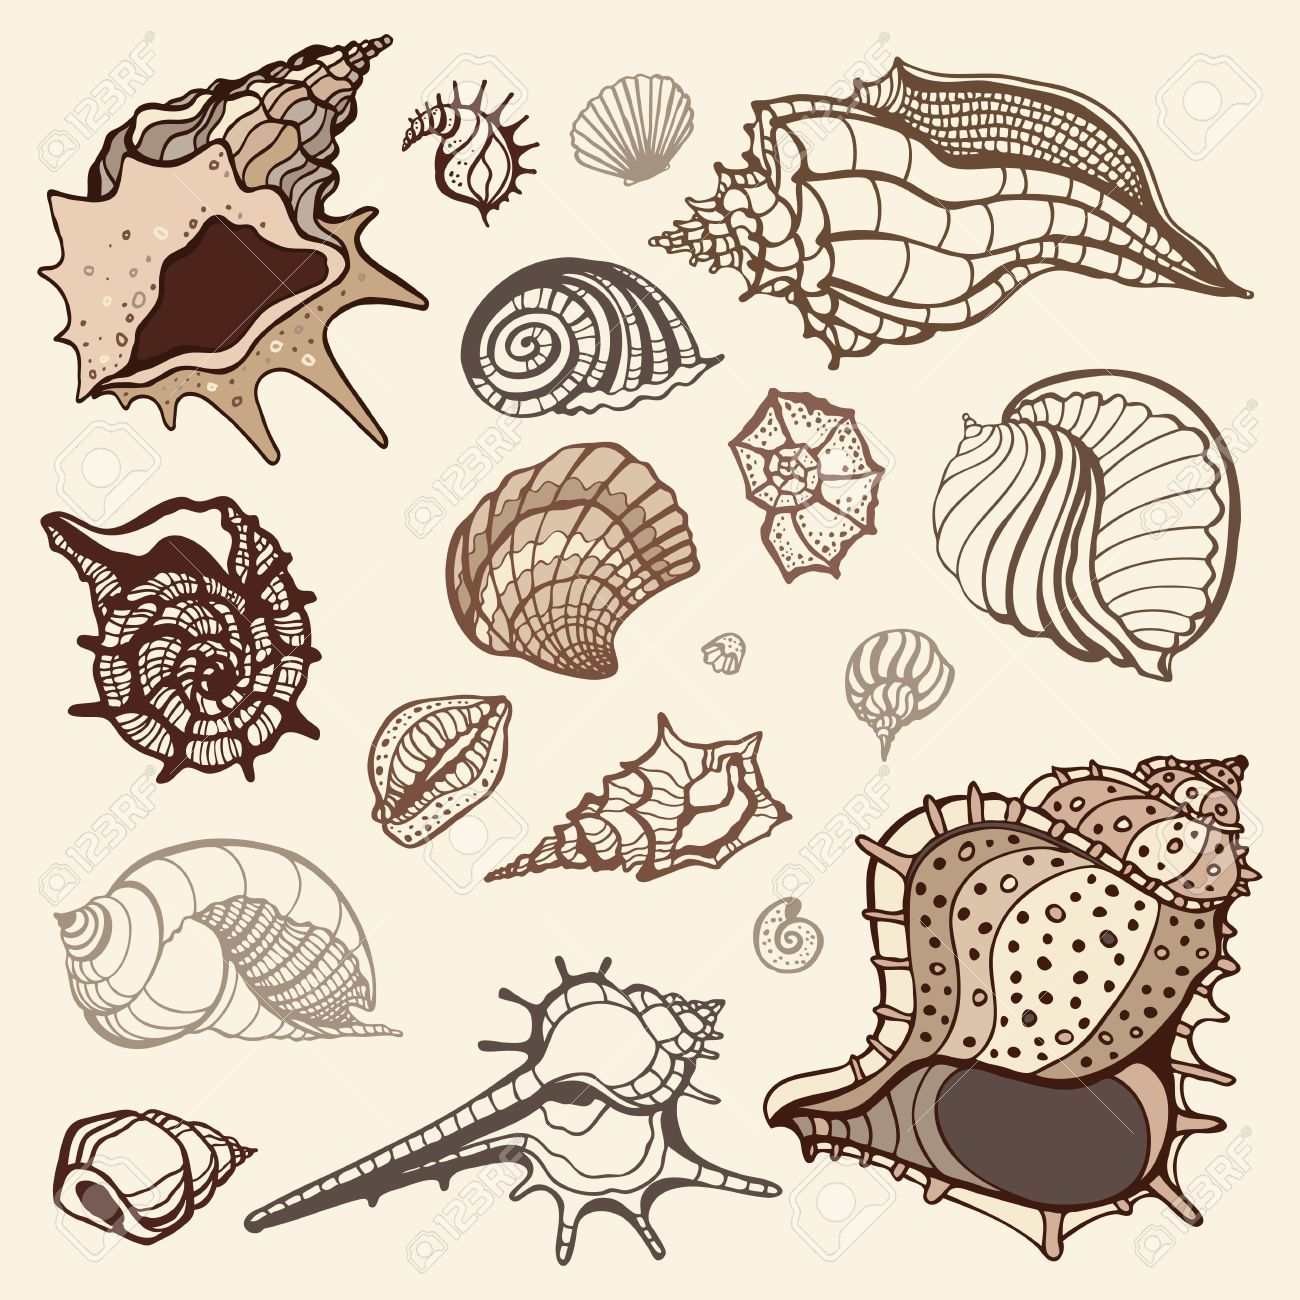 Oyster clipart fossil shell. Oysters stock vector illustration